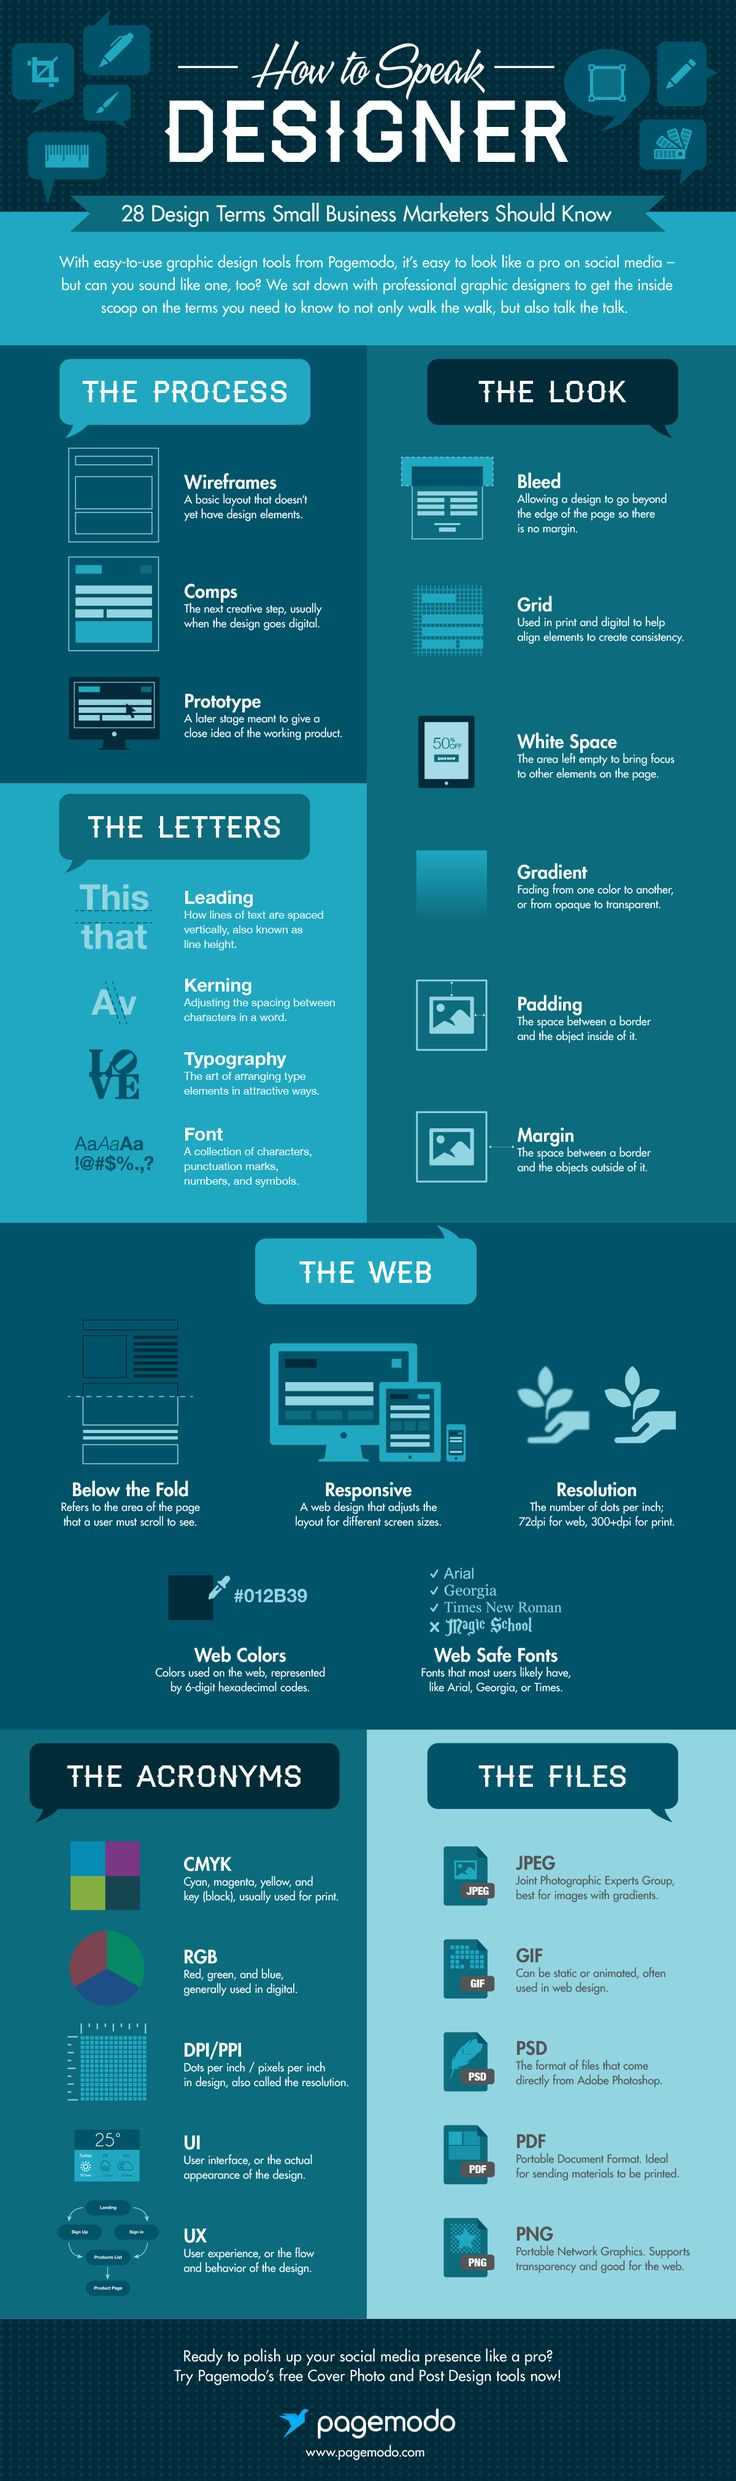 How To Speak Designer #infographic